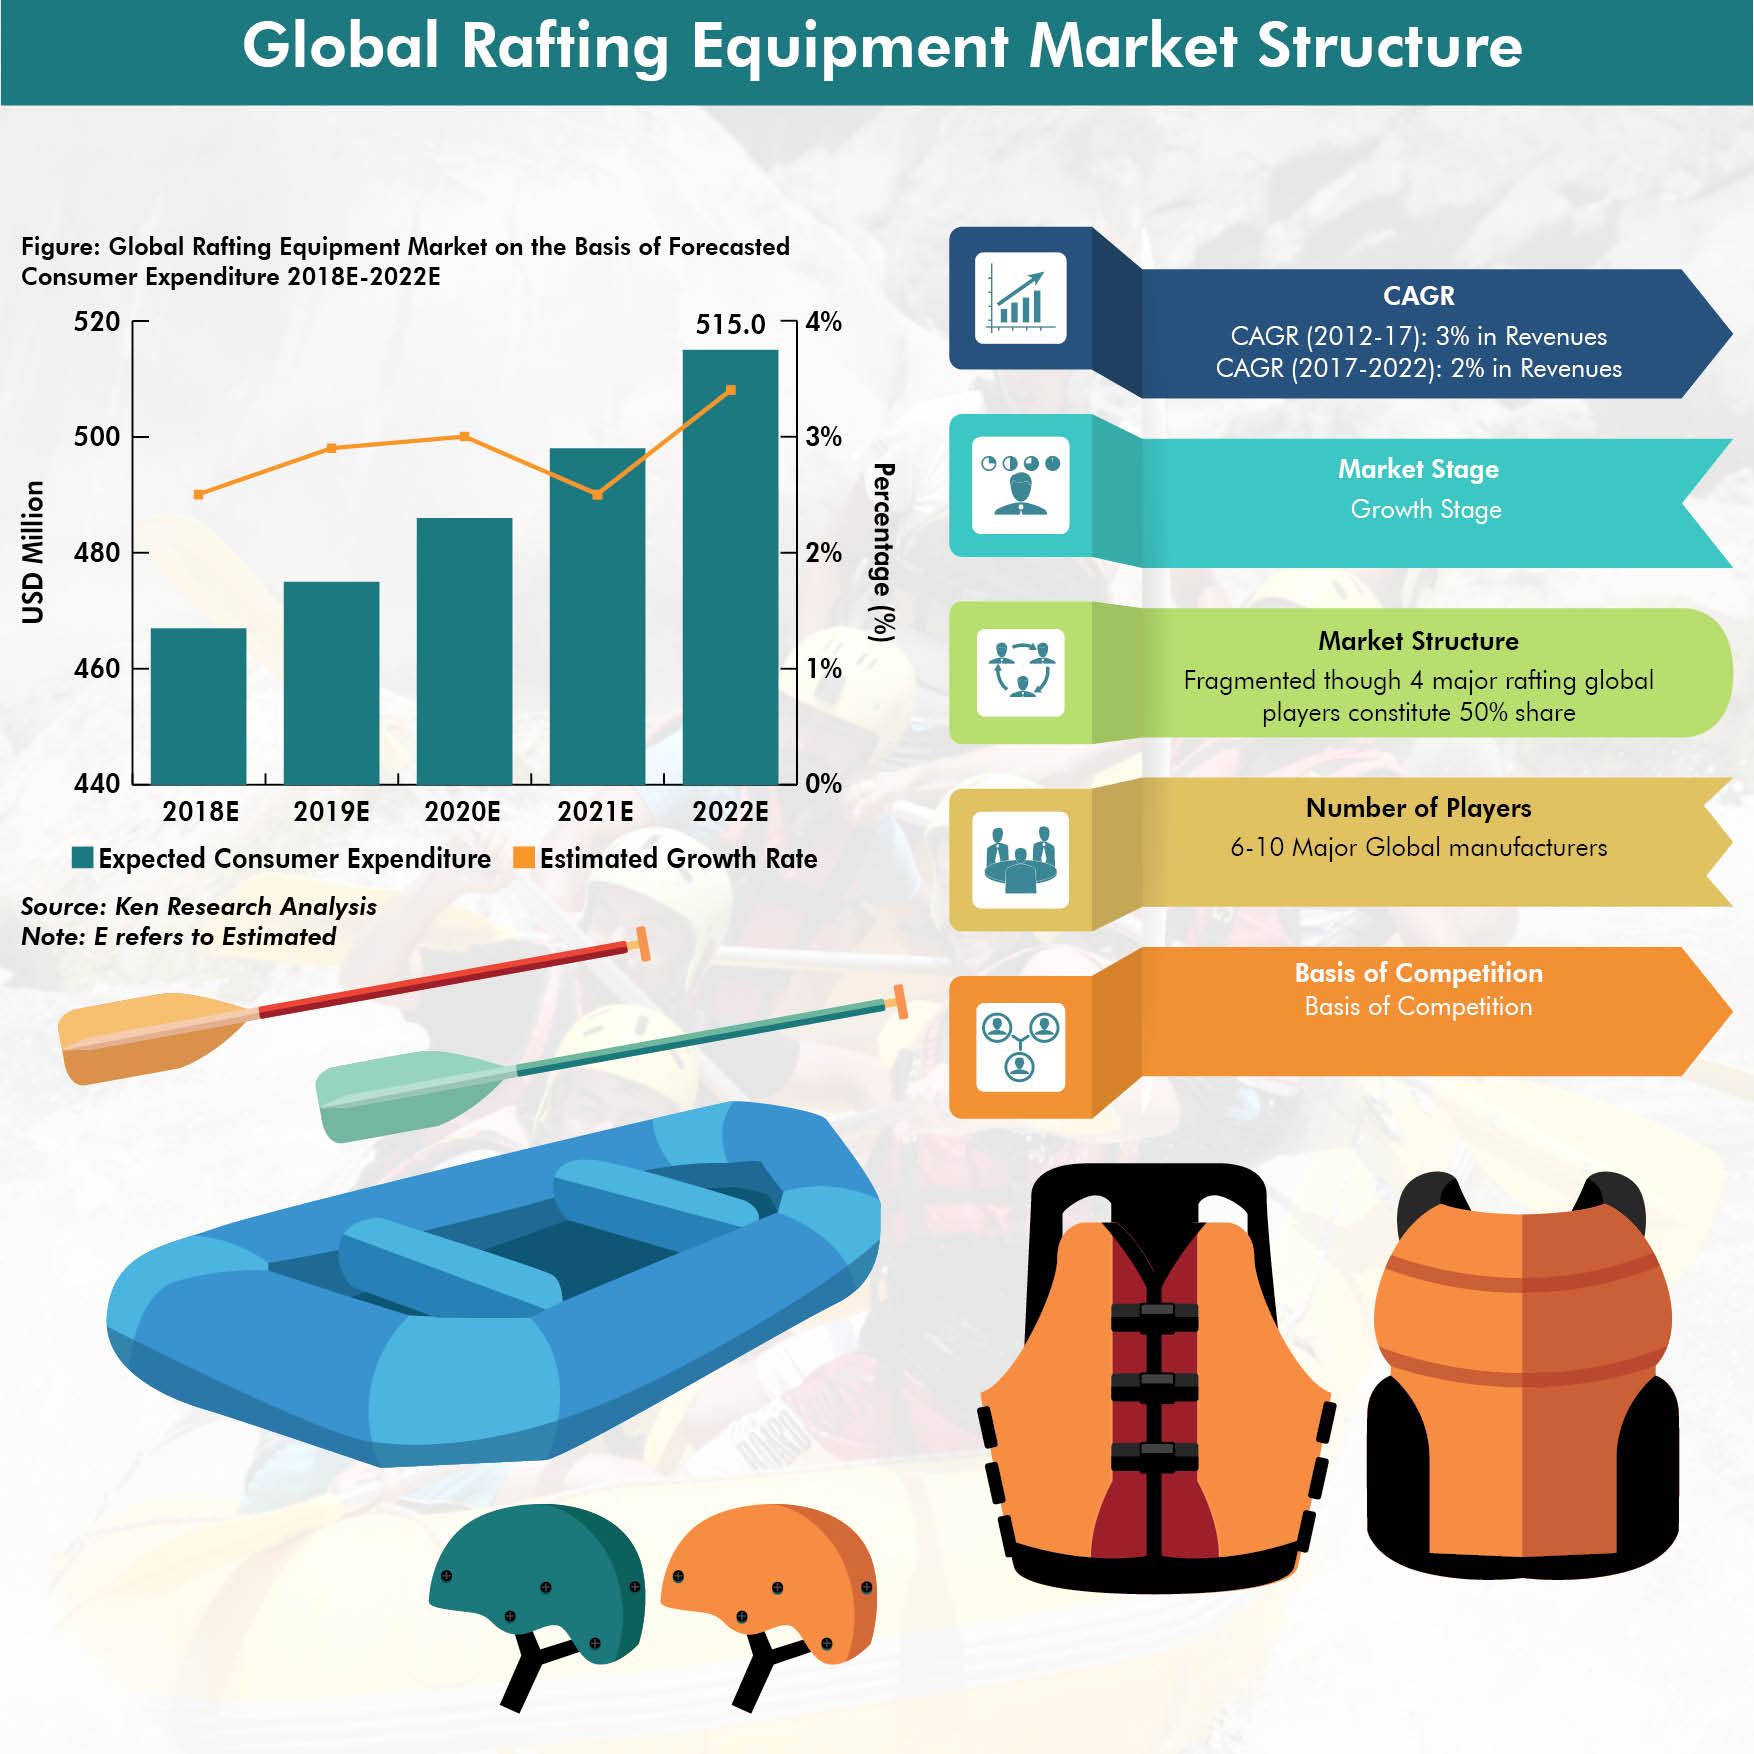 electron beam curing equipment diagram water sports equipment market, rafting market global ... river rafting equipment diagram #6